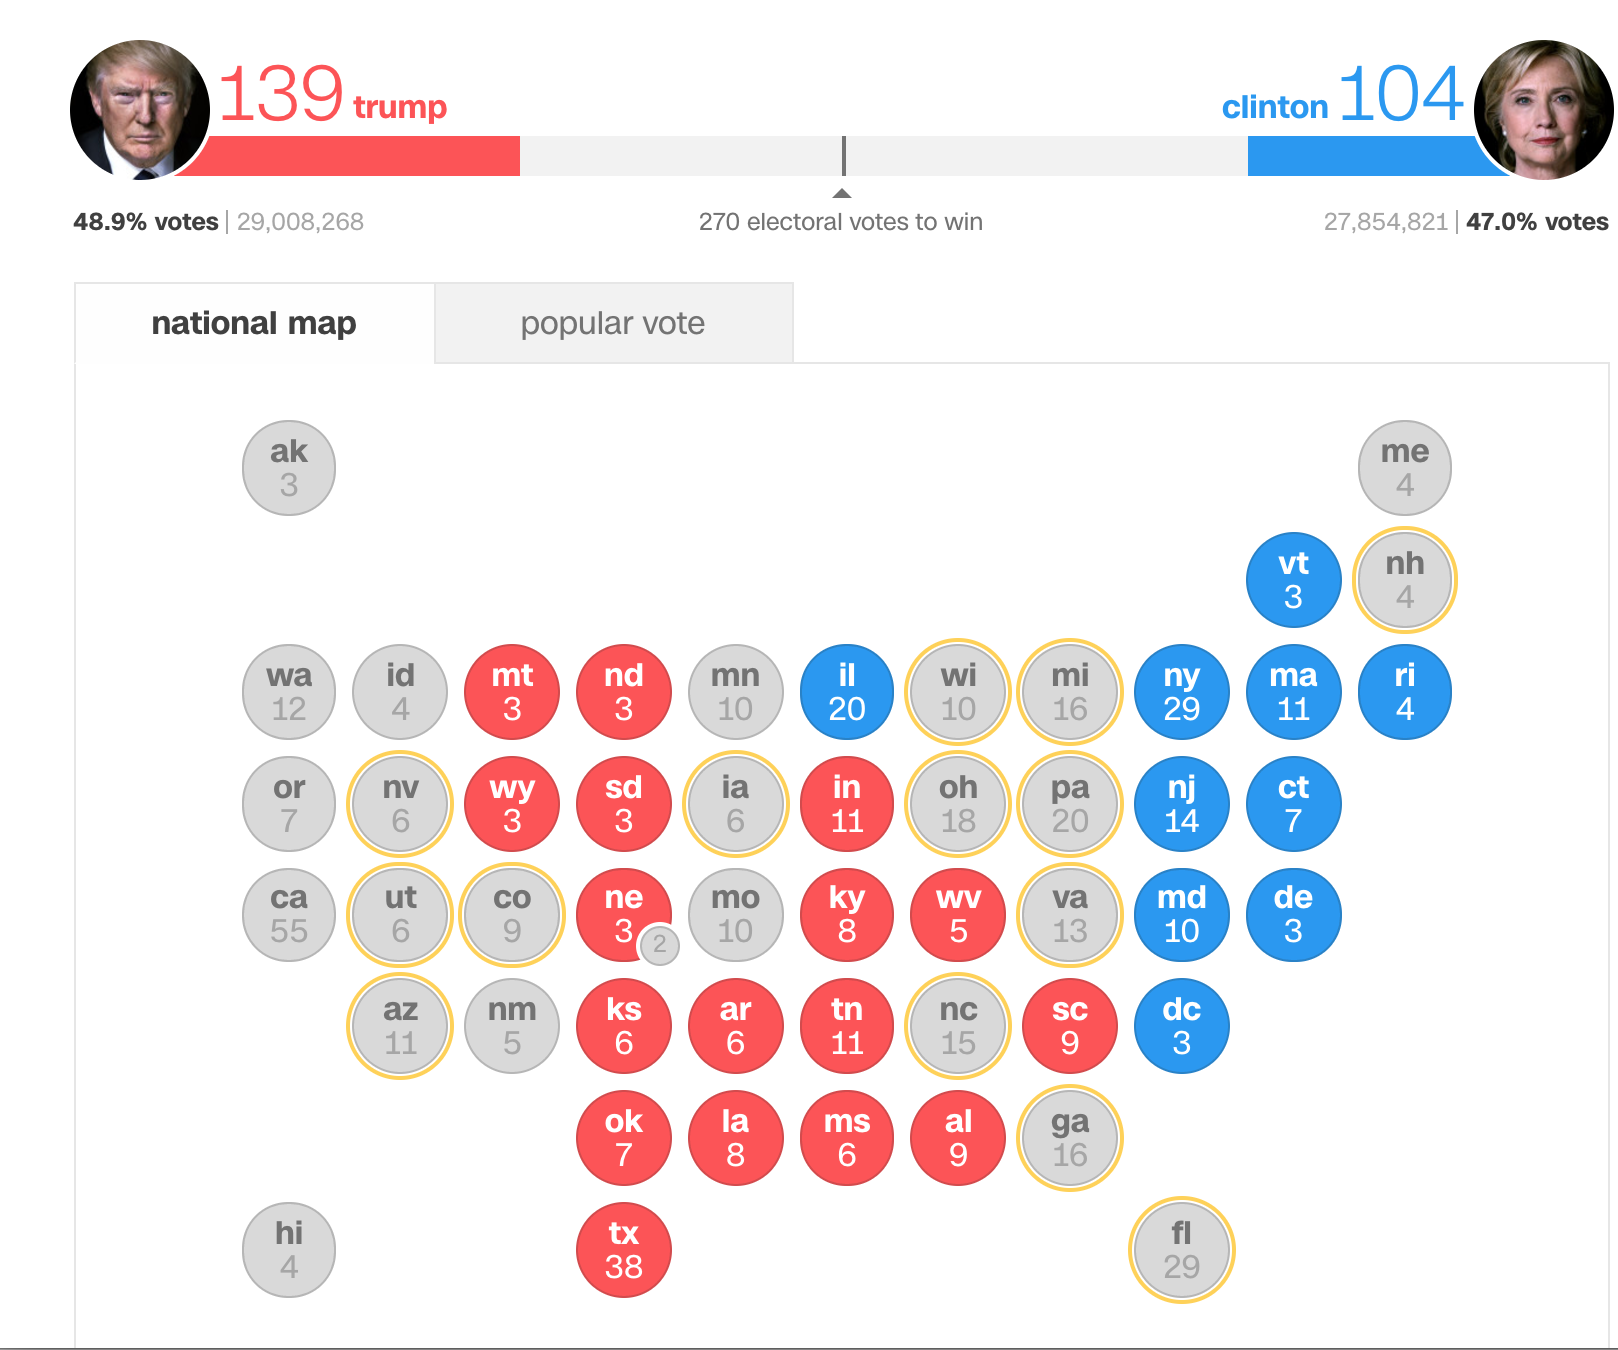 http://edition.cnn.com/election/results/president